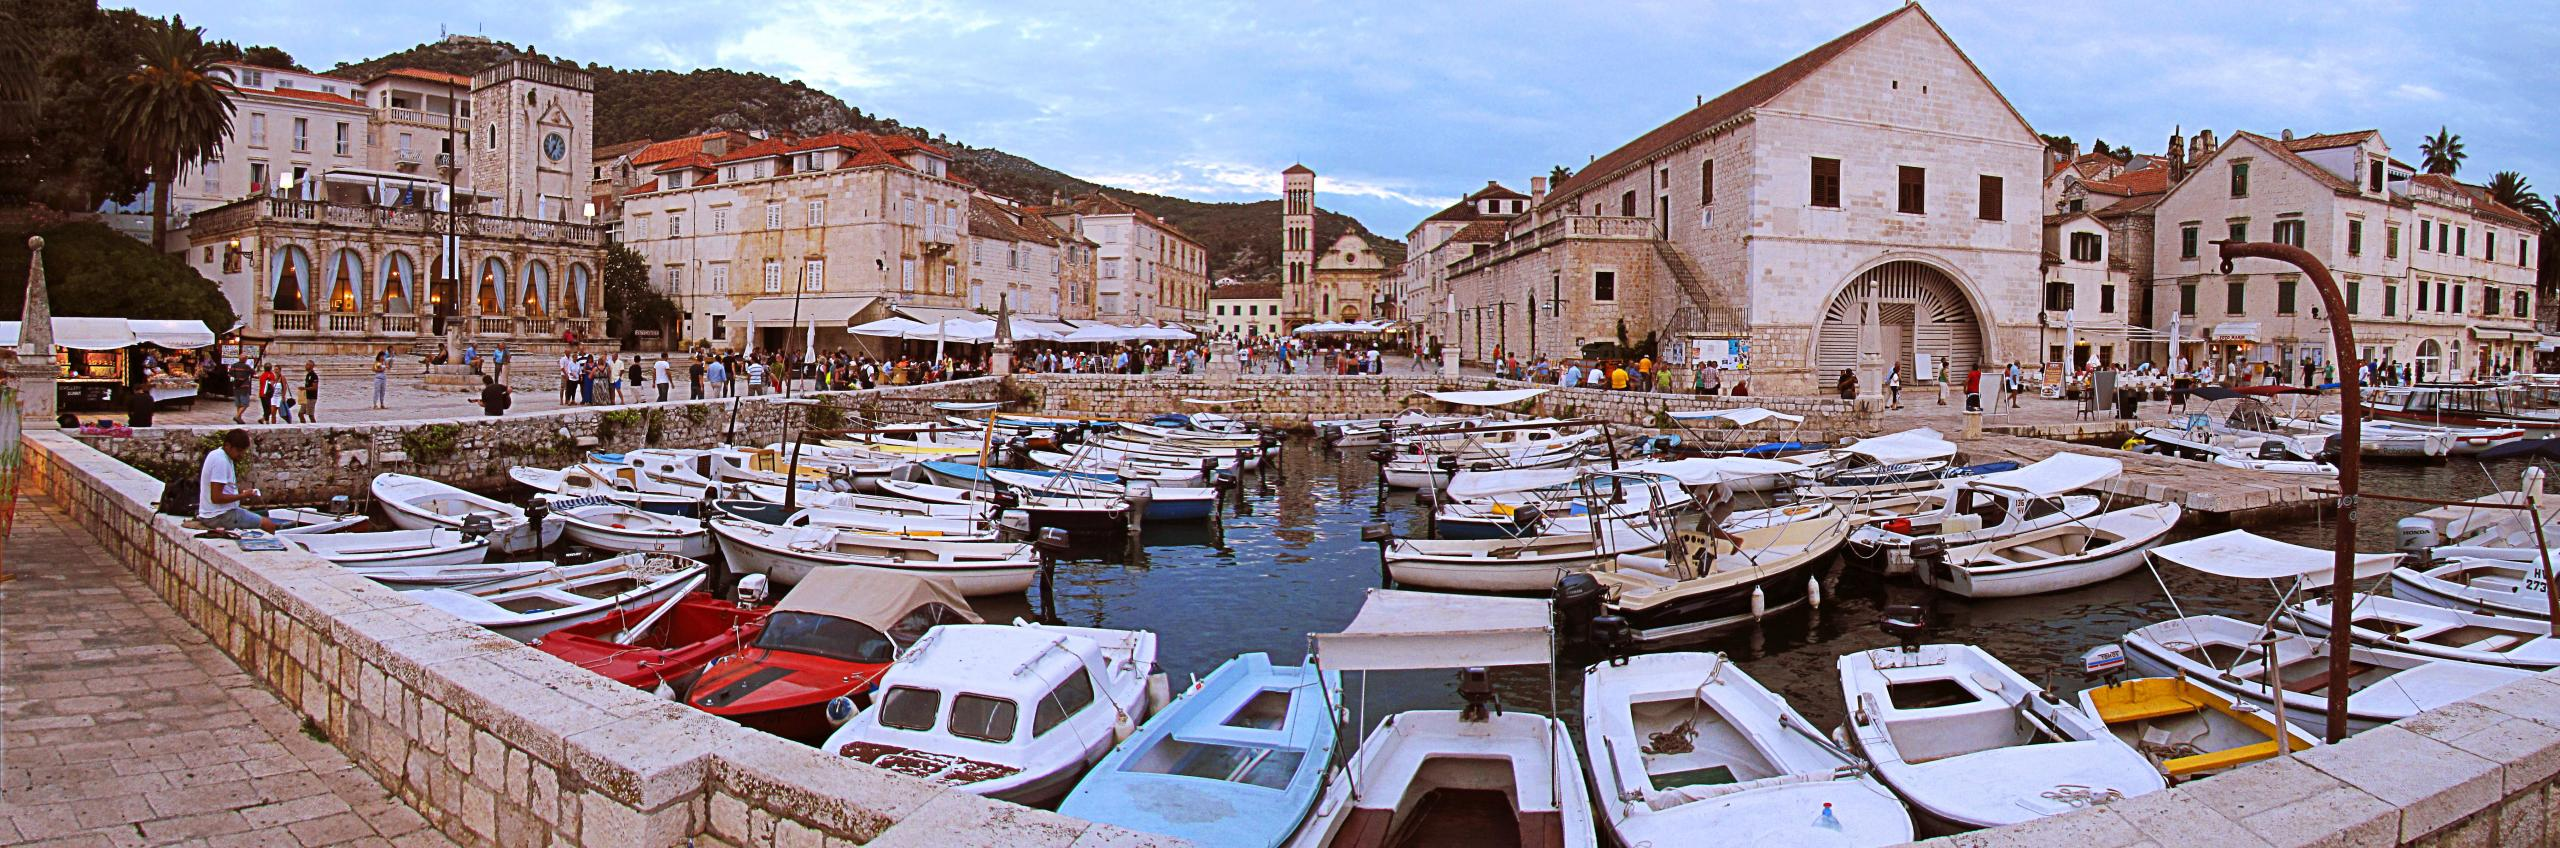 Hvar city center